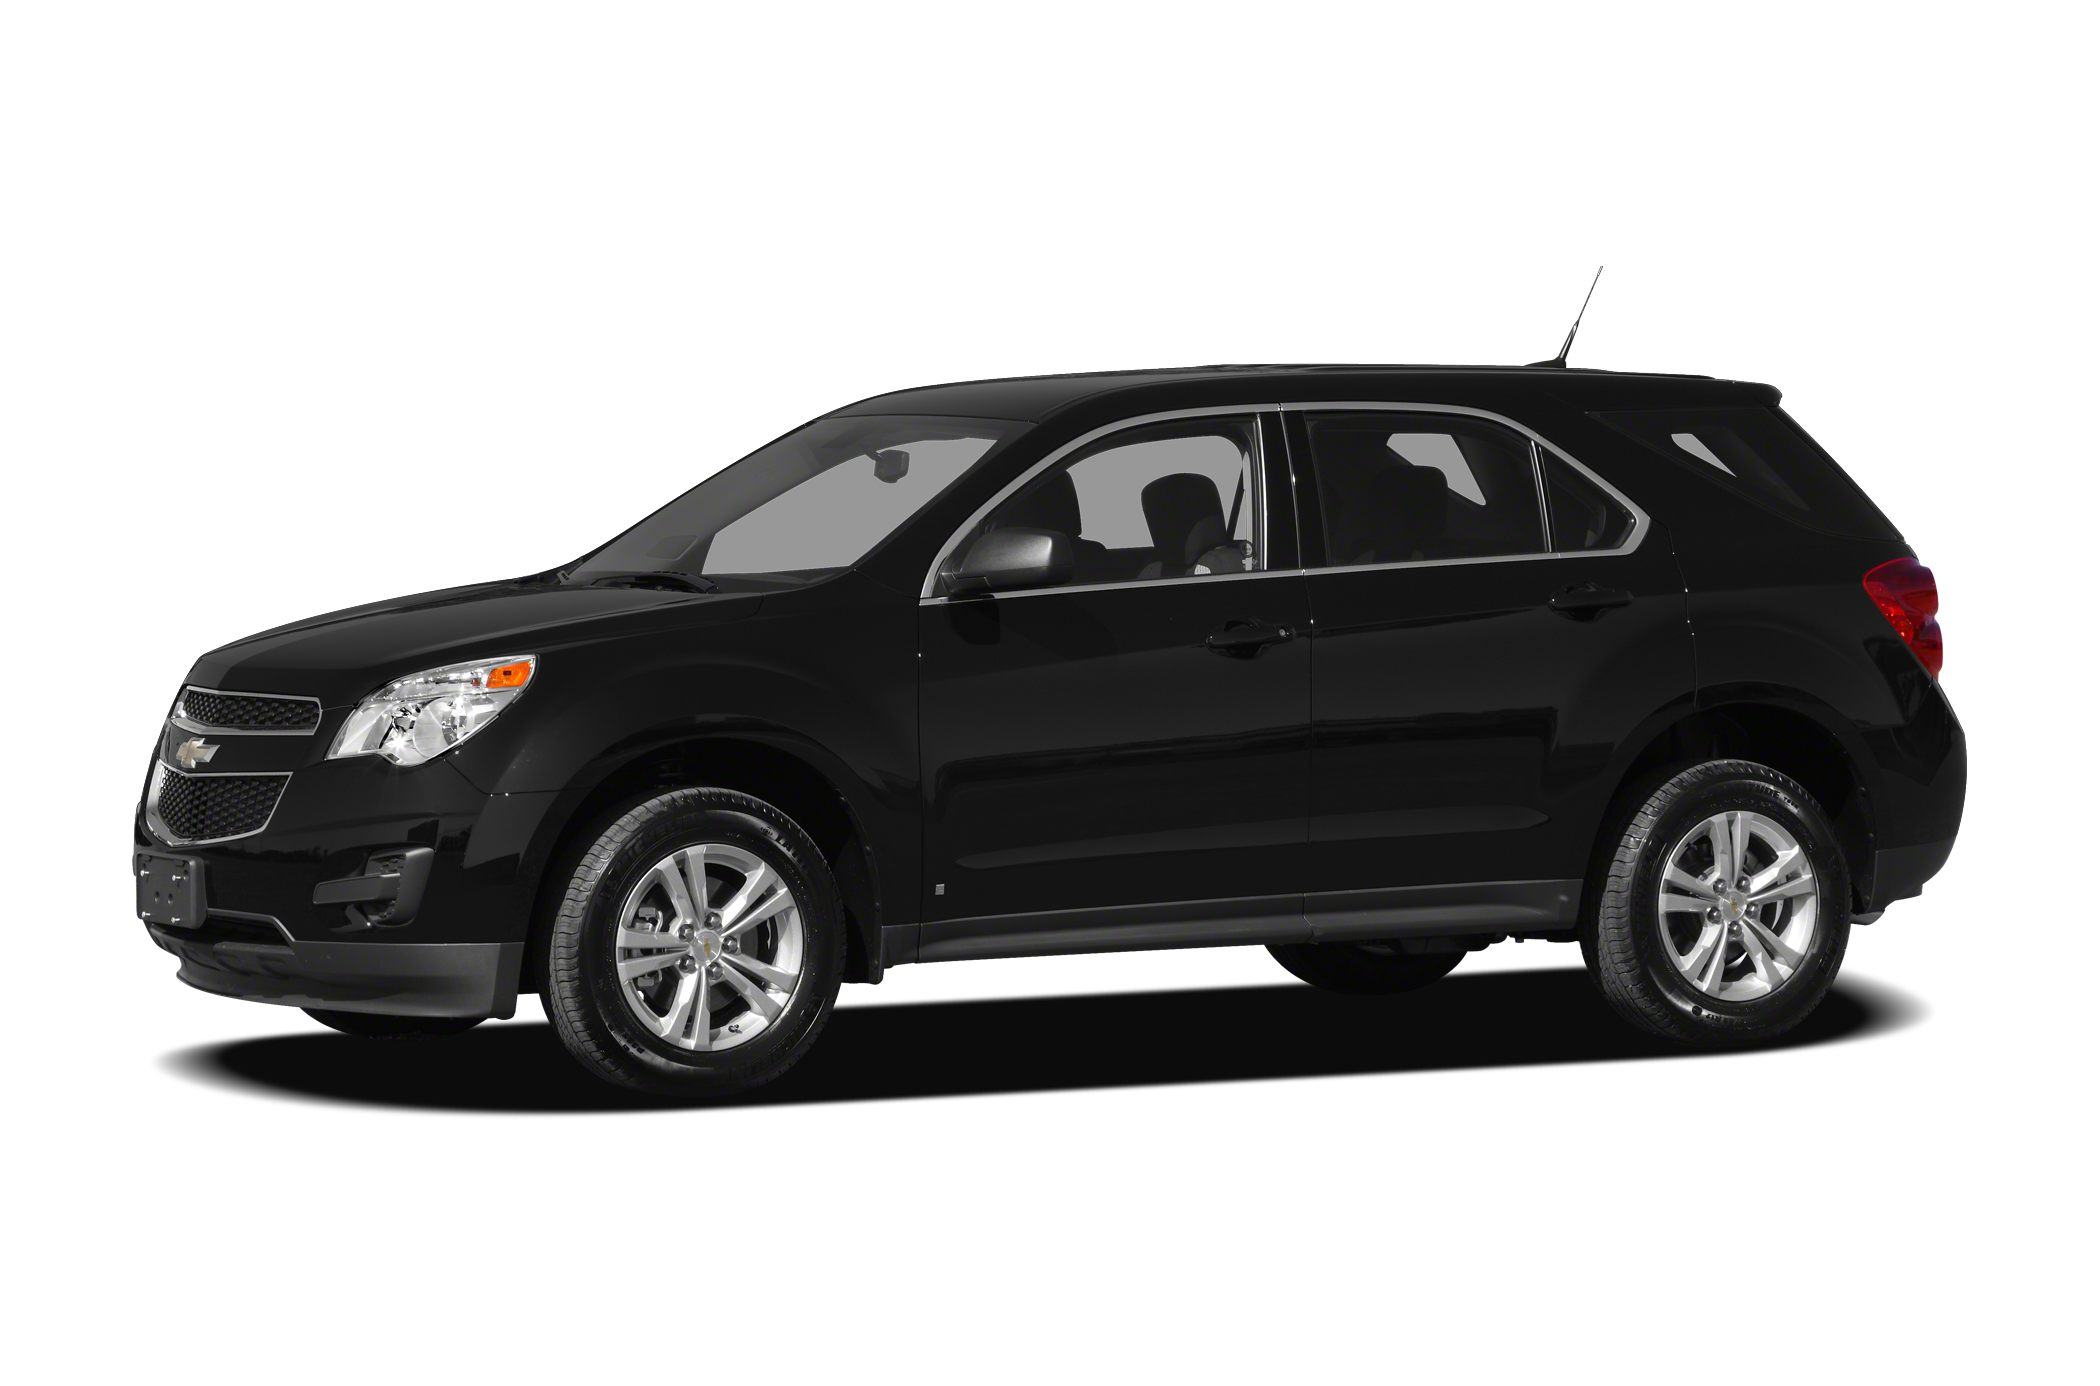 2012 Chevrolet Equinox 1LT 2200 below Kelley Blue Book FUEL EFFICIENT 32 MPG Hwy22 MPG City